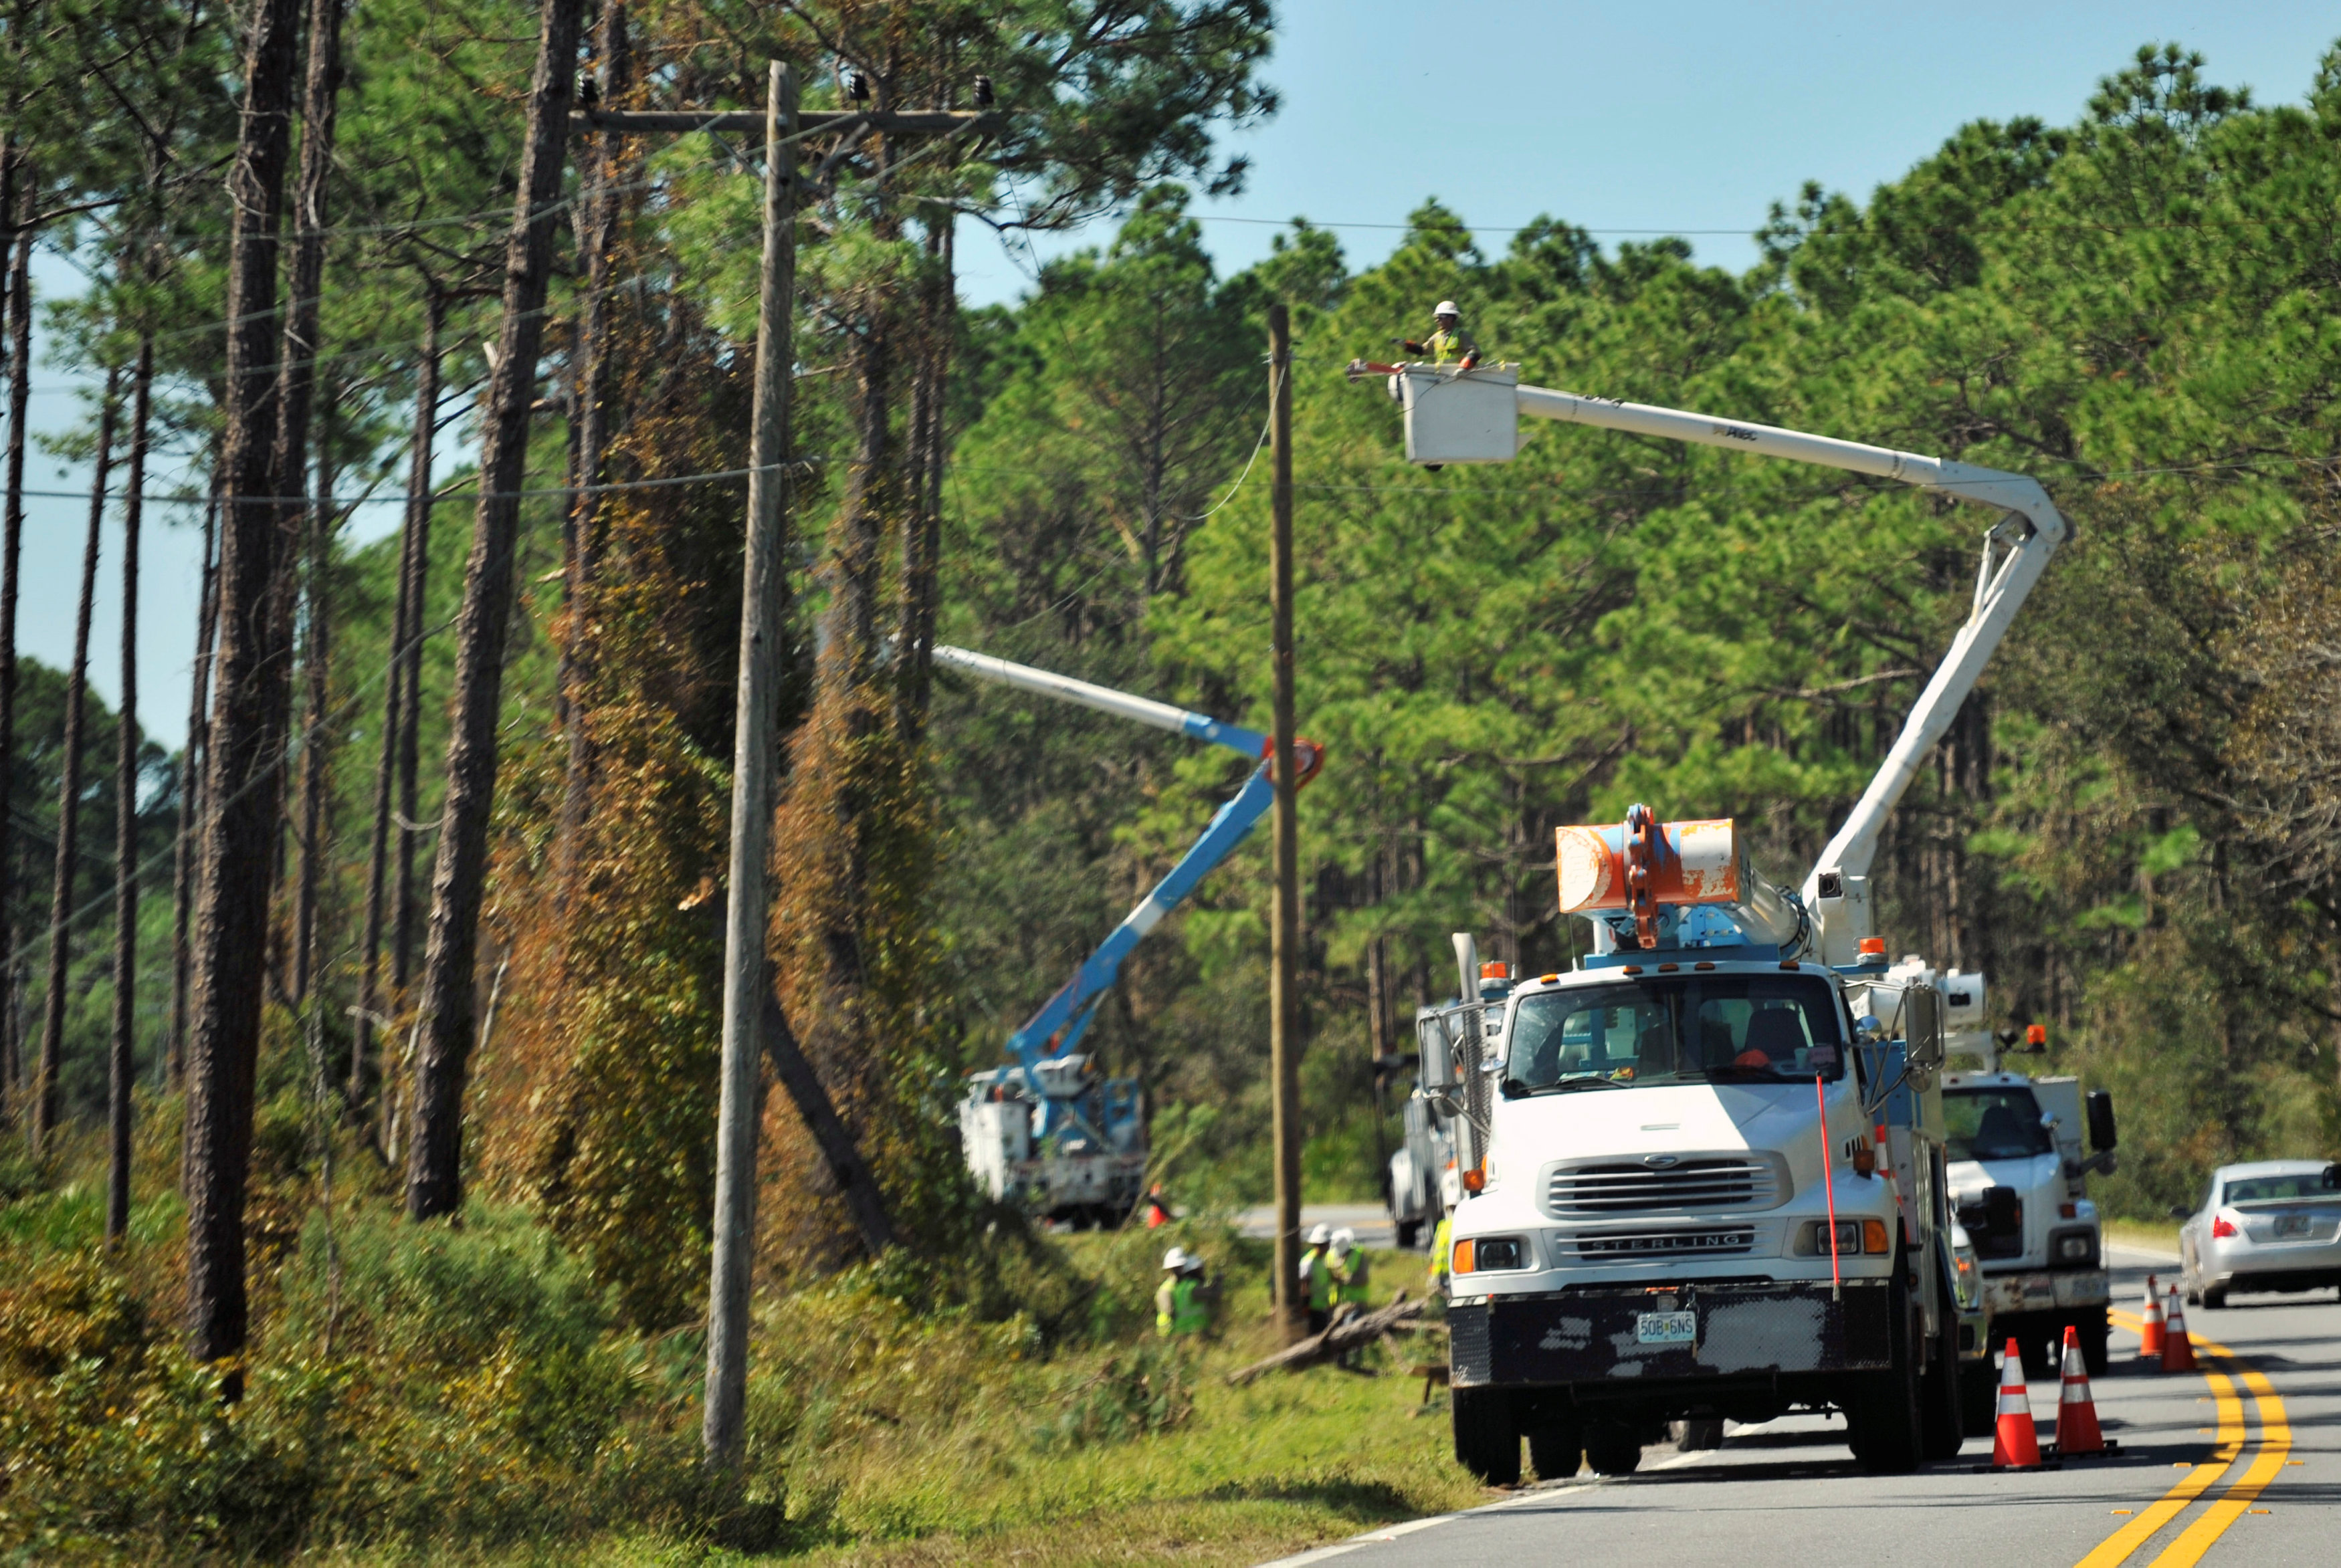 Utility workers repair power lines on U.S. Highway 98 near Alligator Point in the aftermath of Hurricane Michael in Franklin County, Florida, U.S., October 13, 2018. REUTERS/Steve Nesius